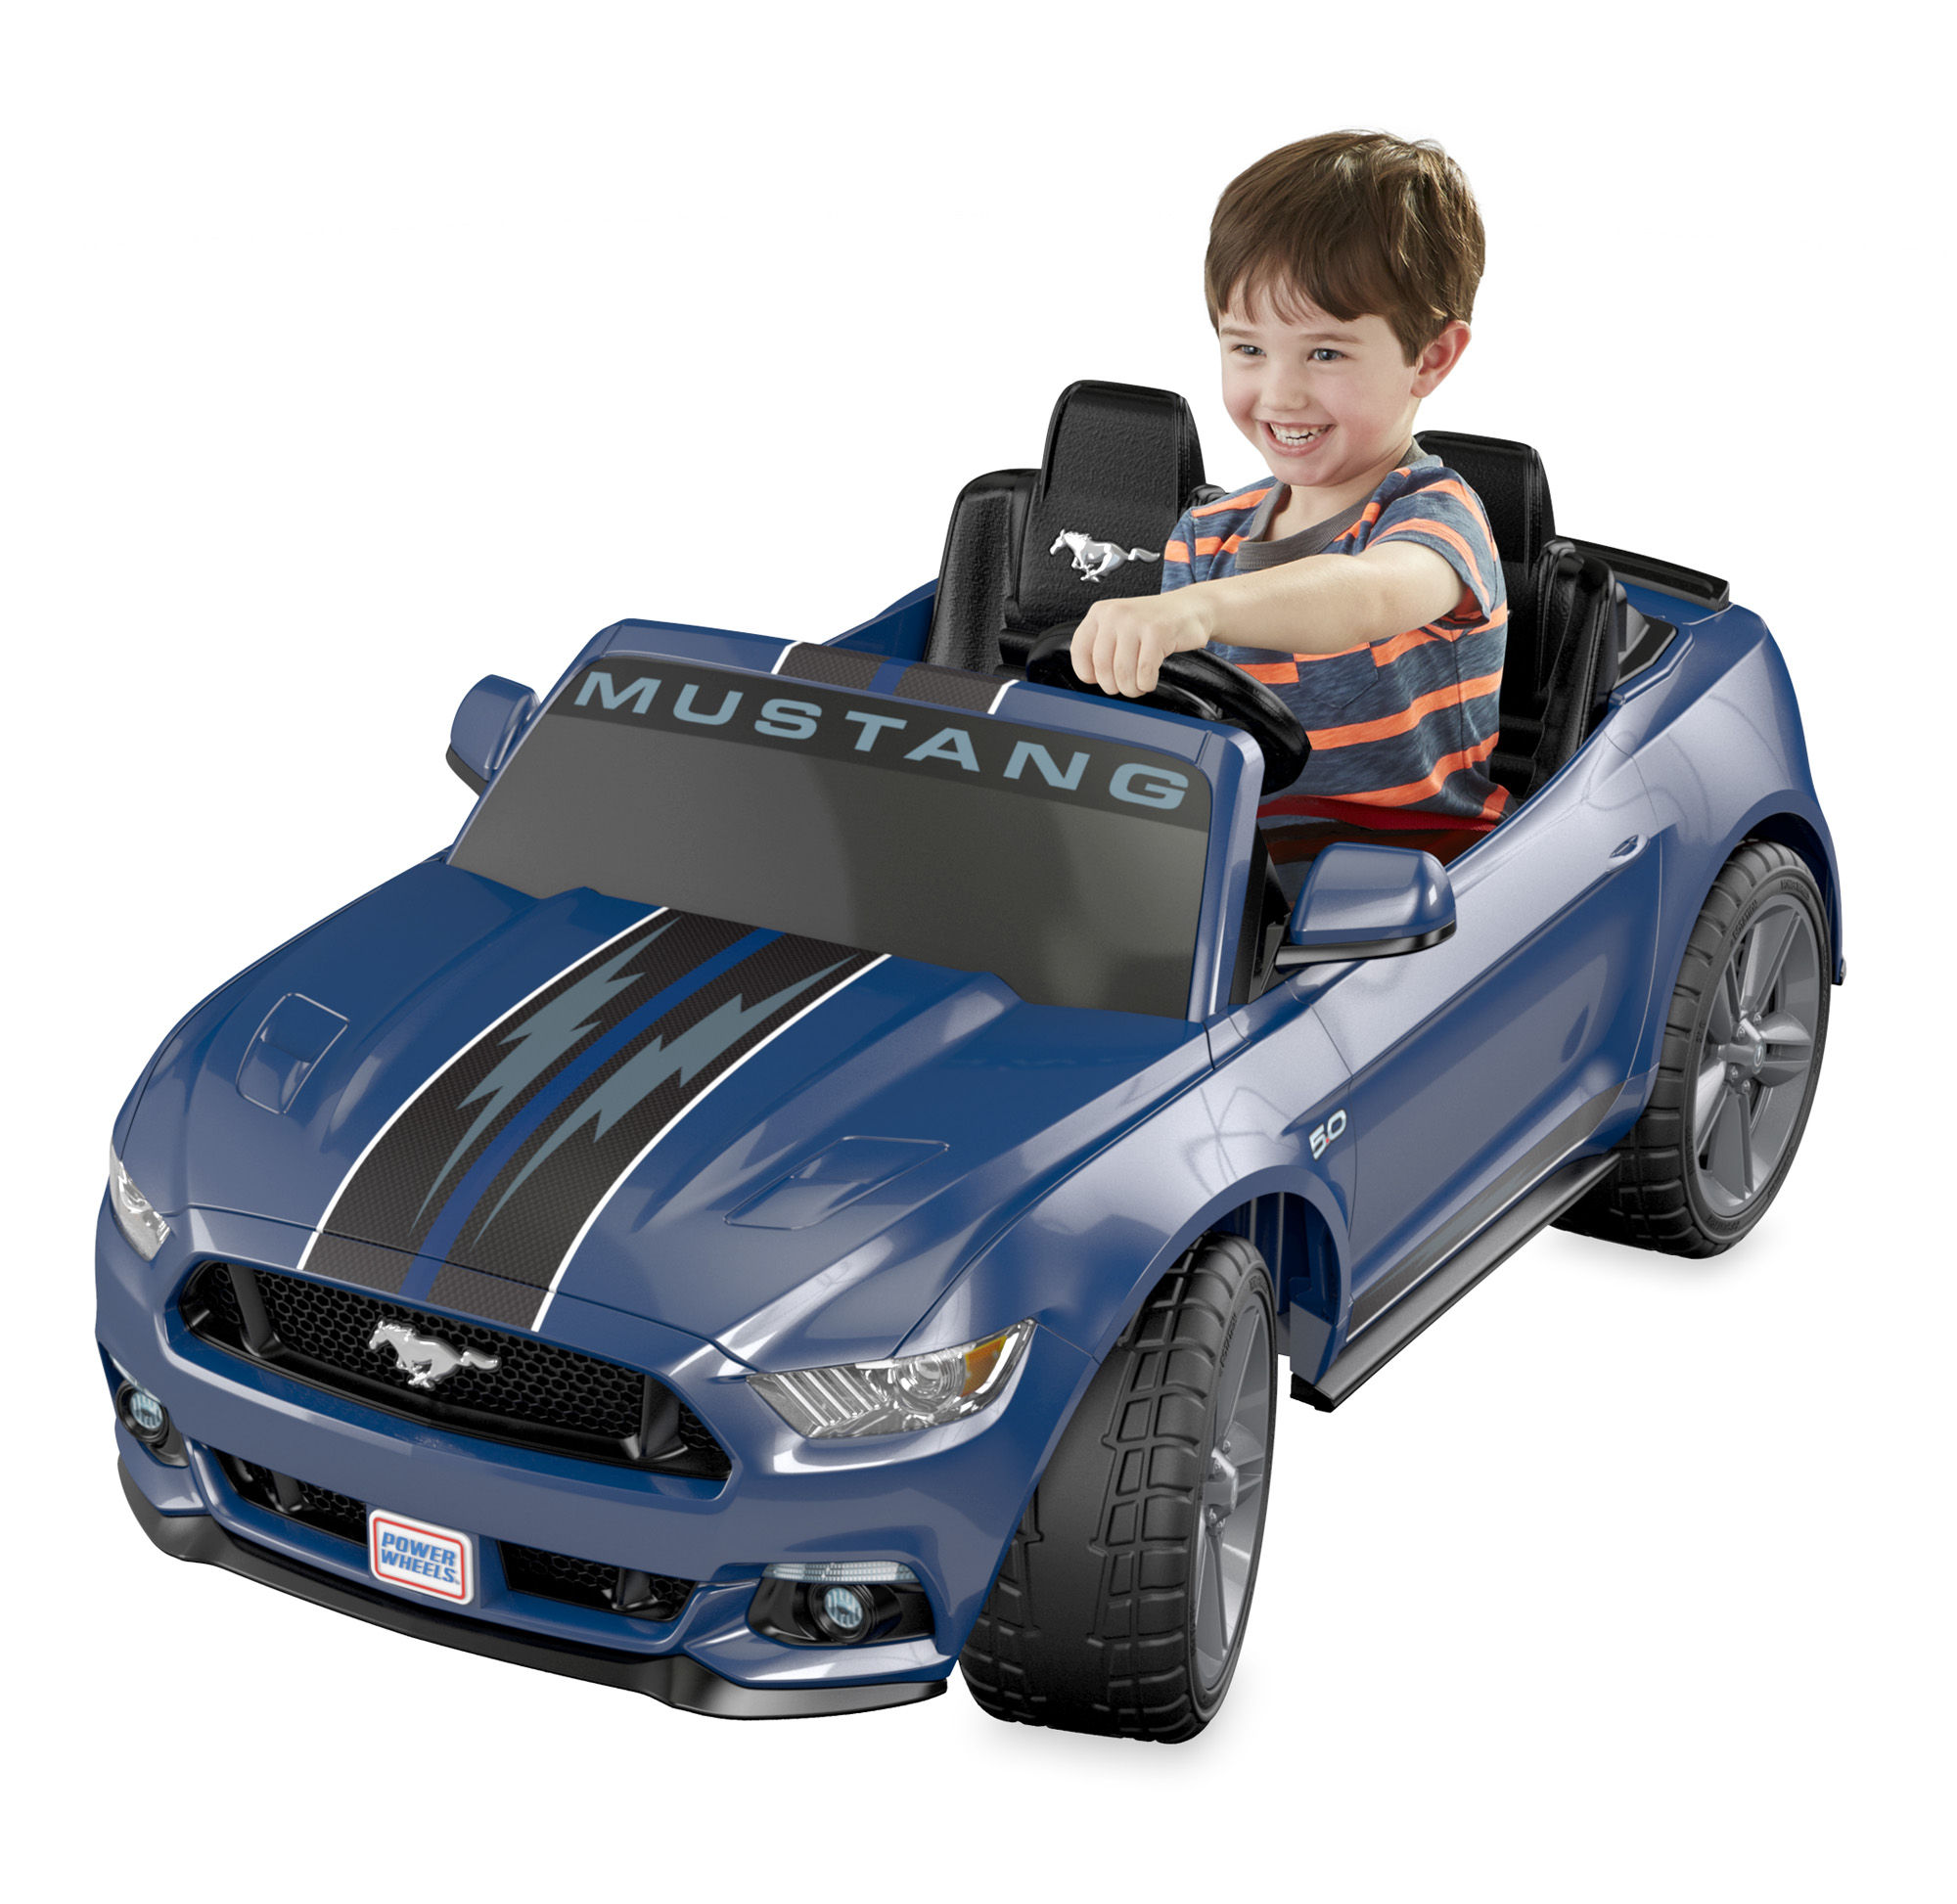 Power Wheels Smart Drive Ford Mustang Ride-On Vehicle by FISHER PRICE